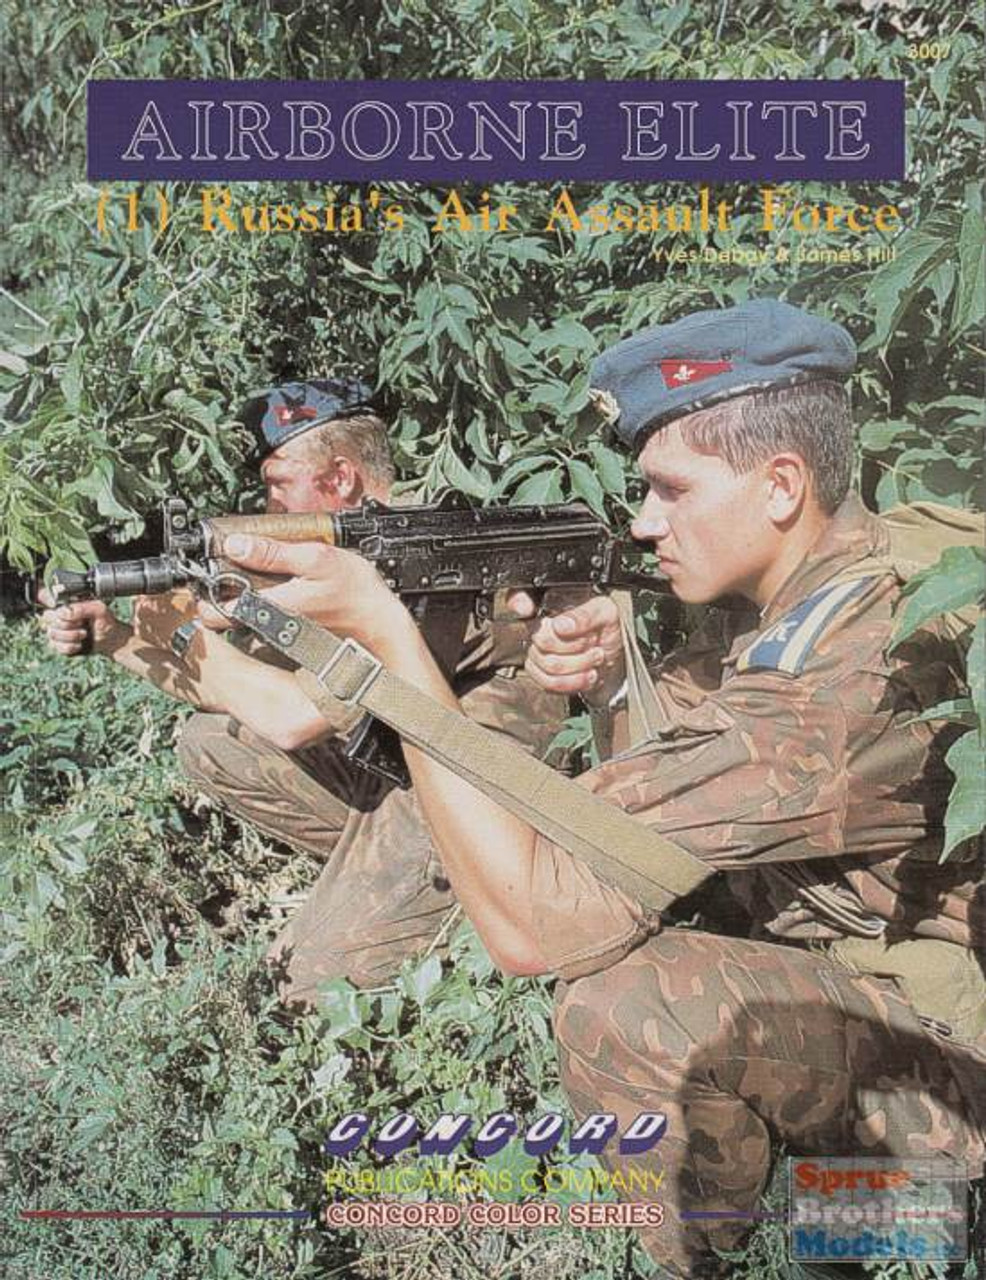 CCD3007 Concord Publications - Airborne Elite 1: Russia's Air Assault Force